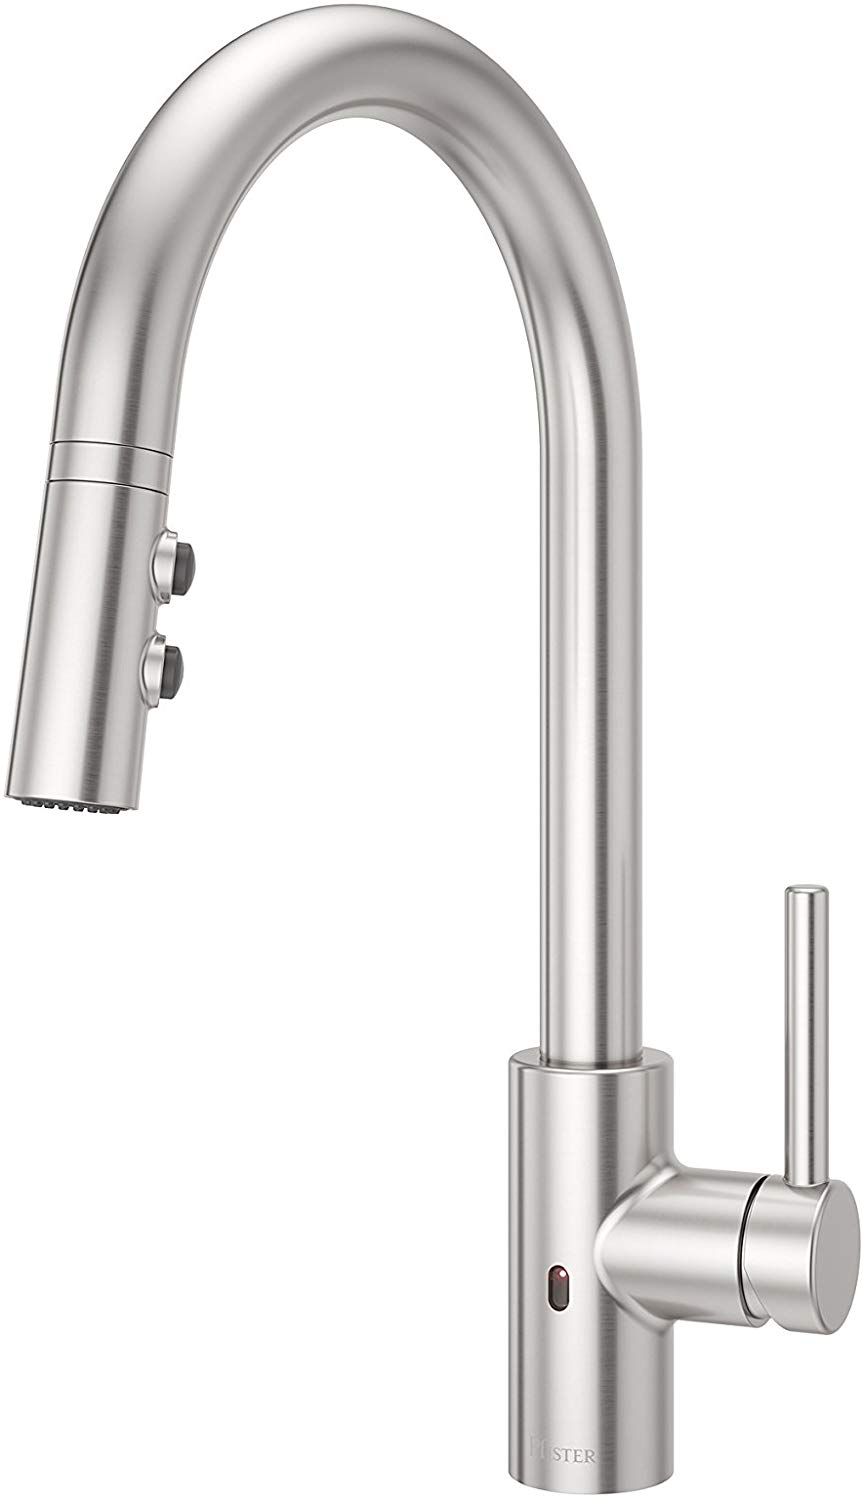 Pfister Stellen Touch-Free Pull Down Faucet